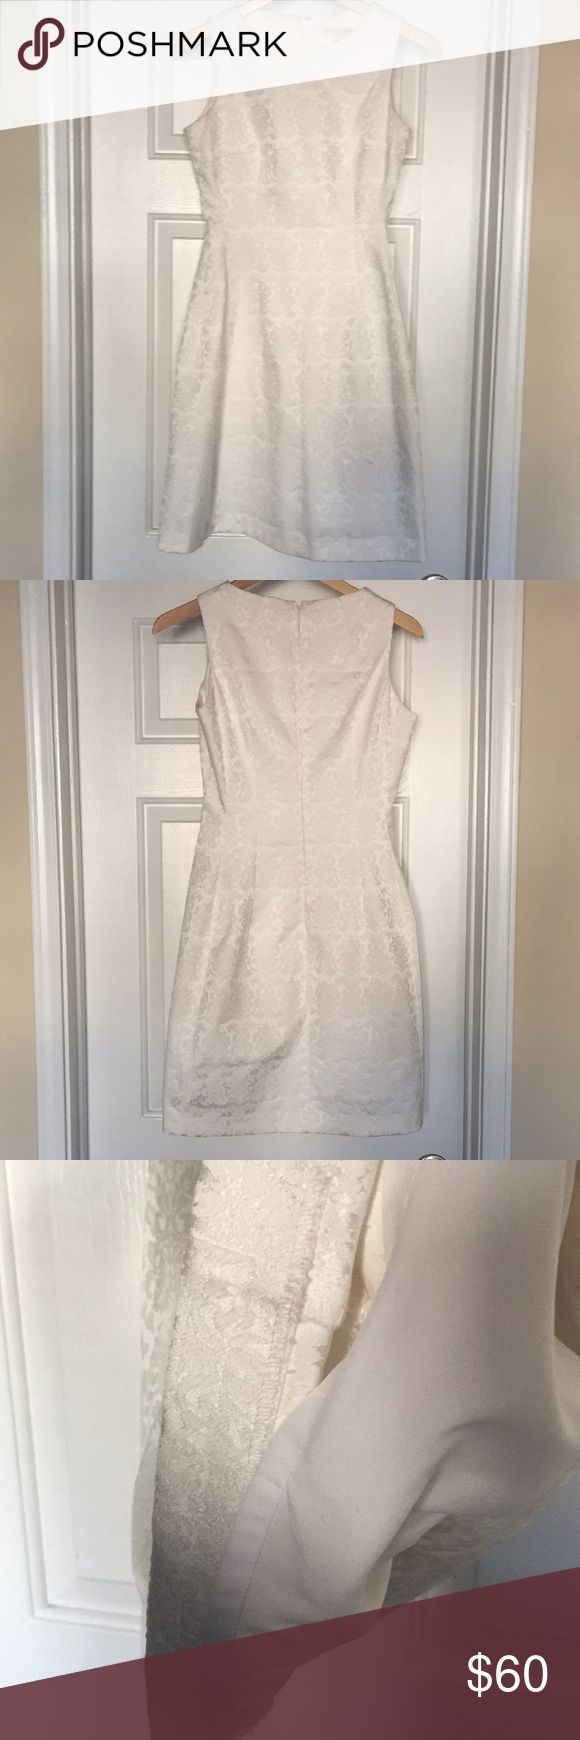 New York & Co Eve Mendes Off White Cocktail Dress Worn once to a wedding. Off white/ivory color. Scoop neck, hidden zipper in the back. Lining underneath. Pair it with my pink heels for sale in my closet. 💕 New York & Company Dresses Mini